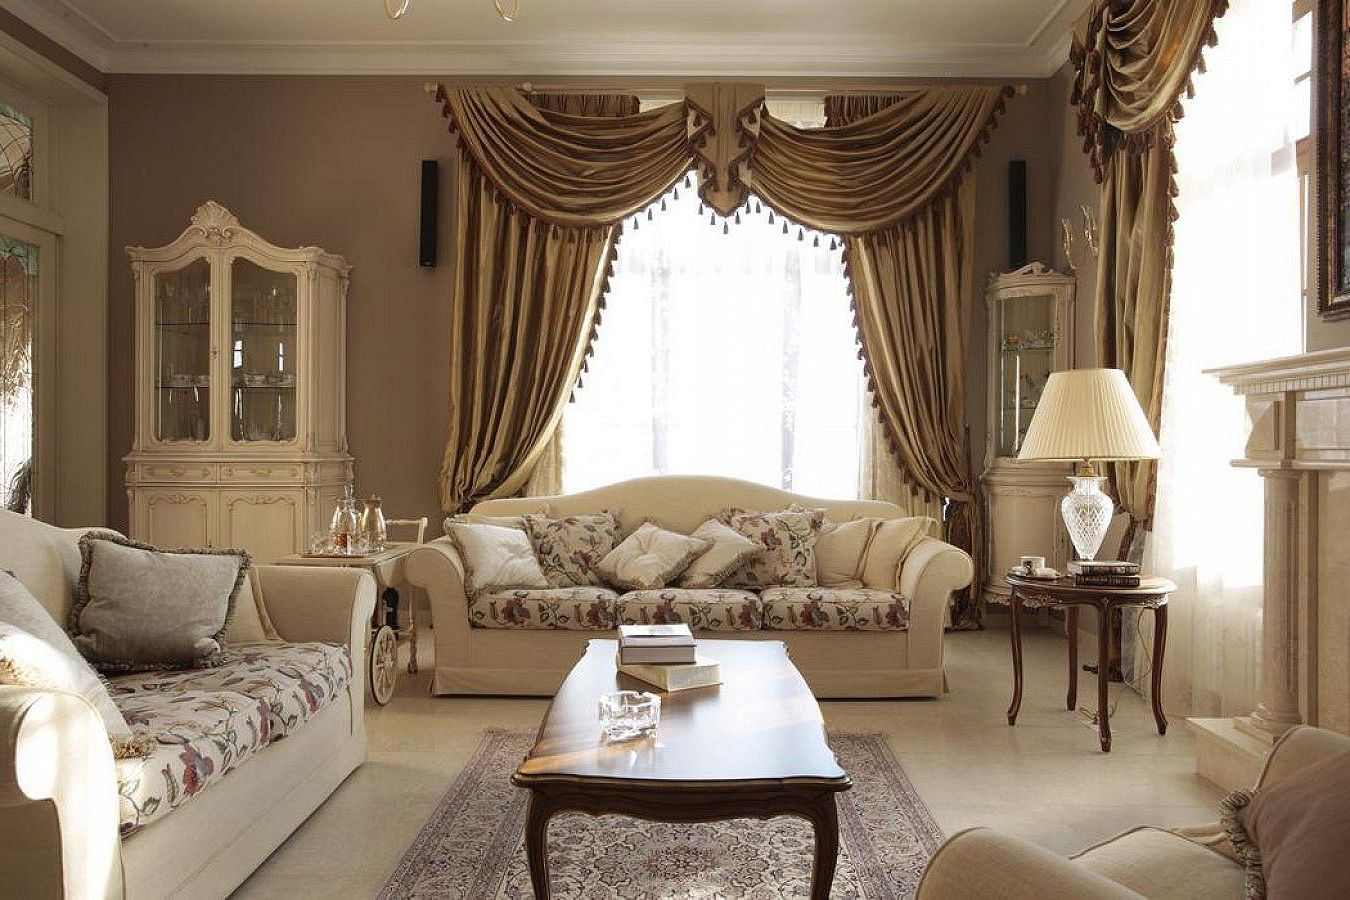 Royalty Bedroom Furniture Classic Style Interior Design Ideas